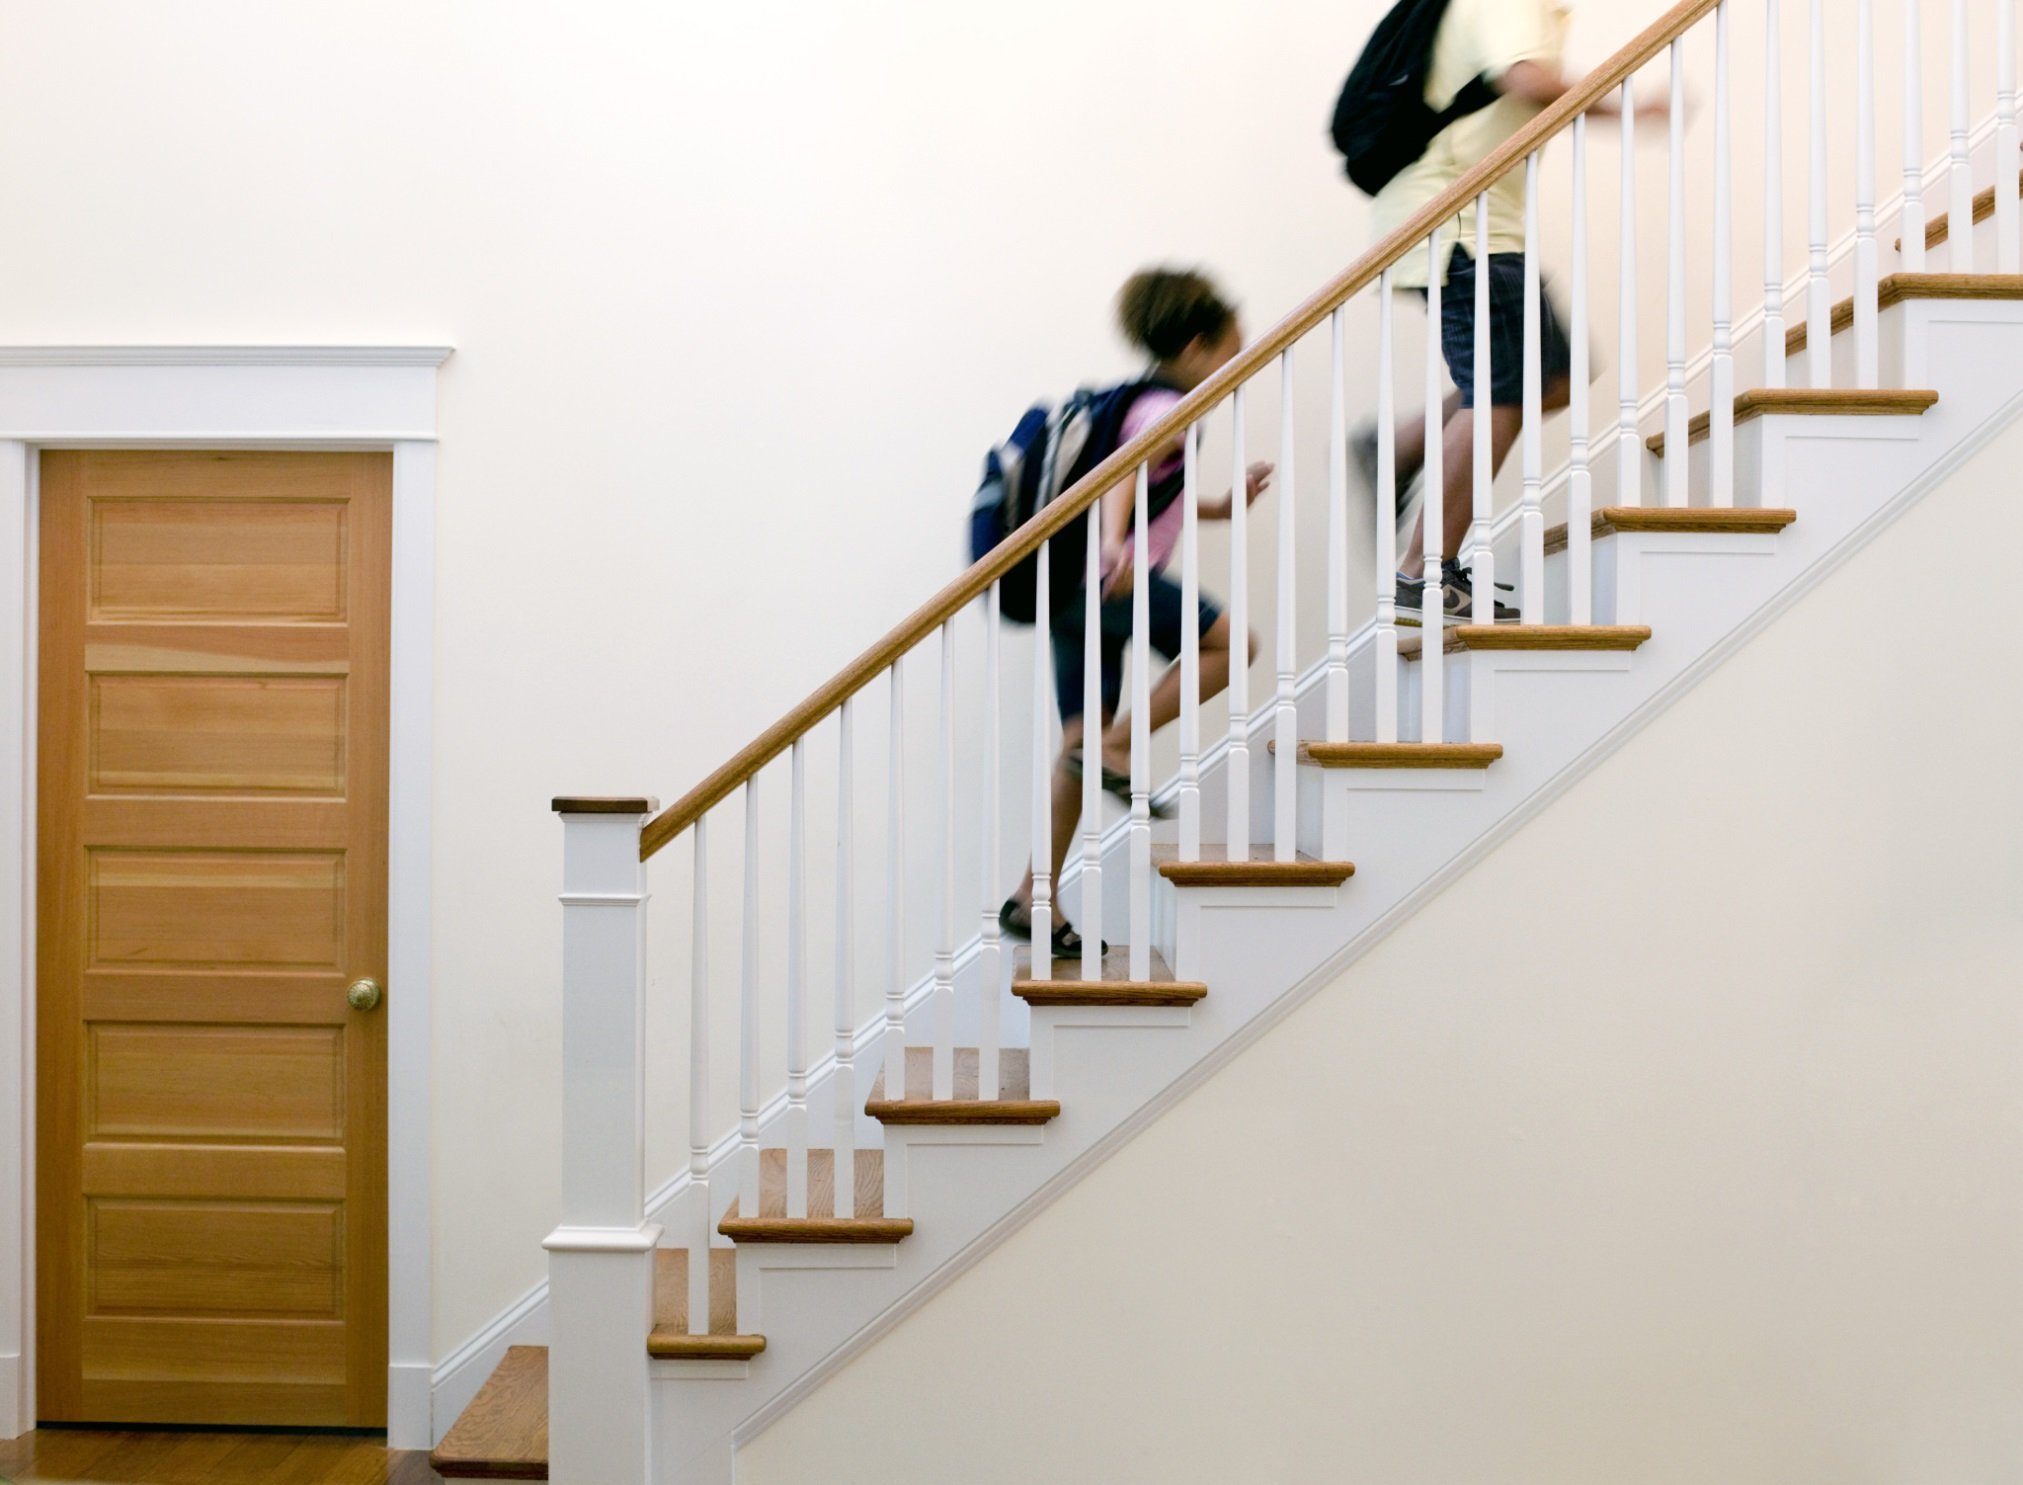 Merveilleux Kids With ADHD And Anxiety Running Up Stairs